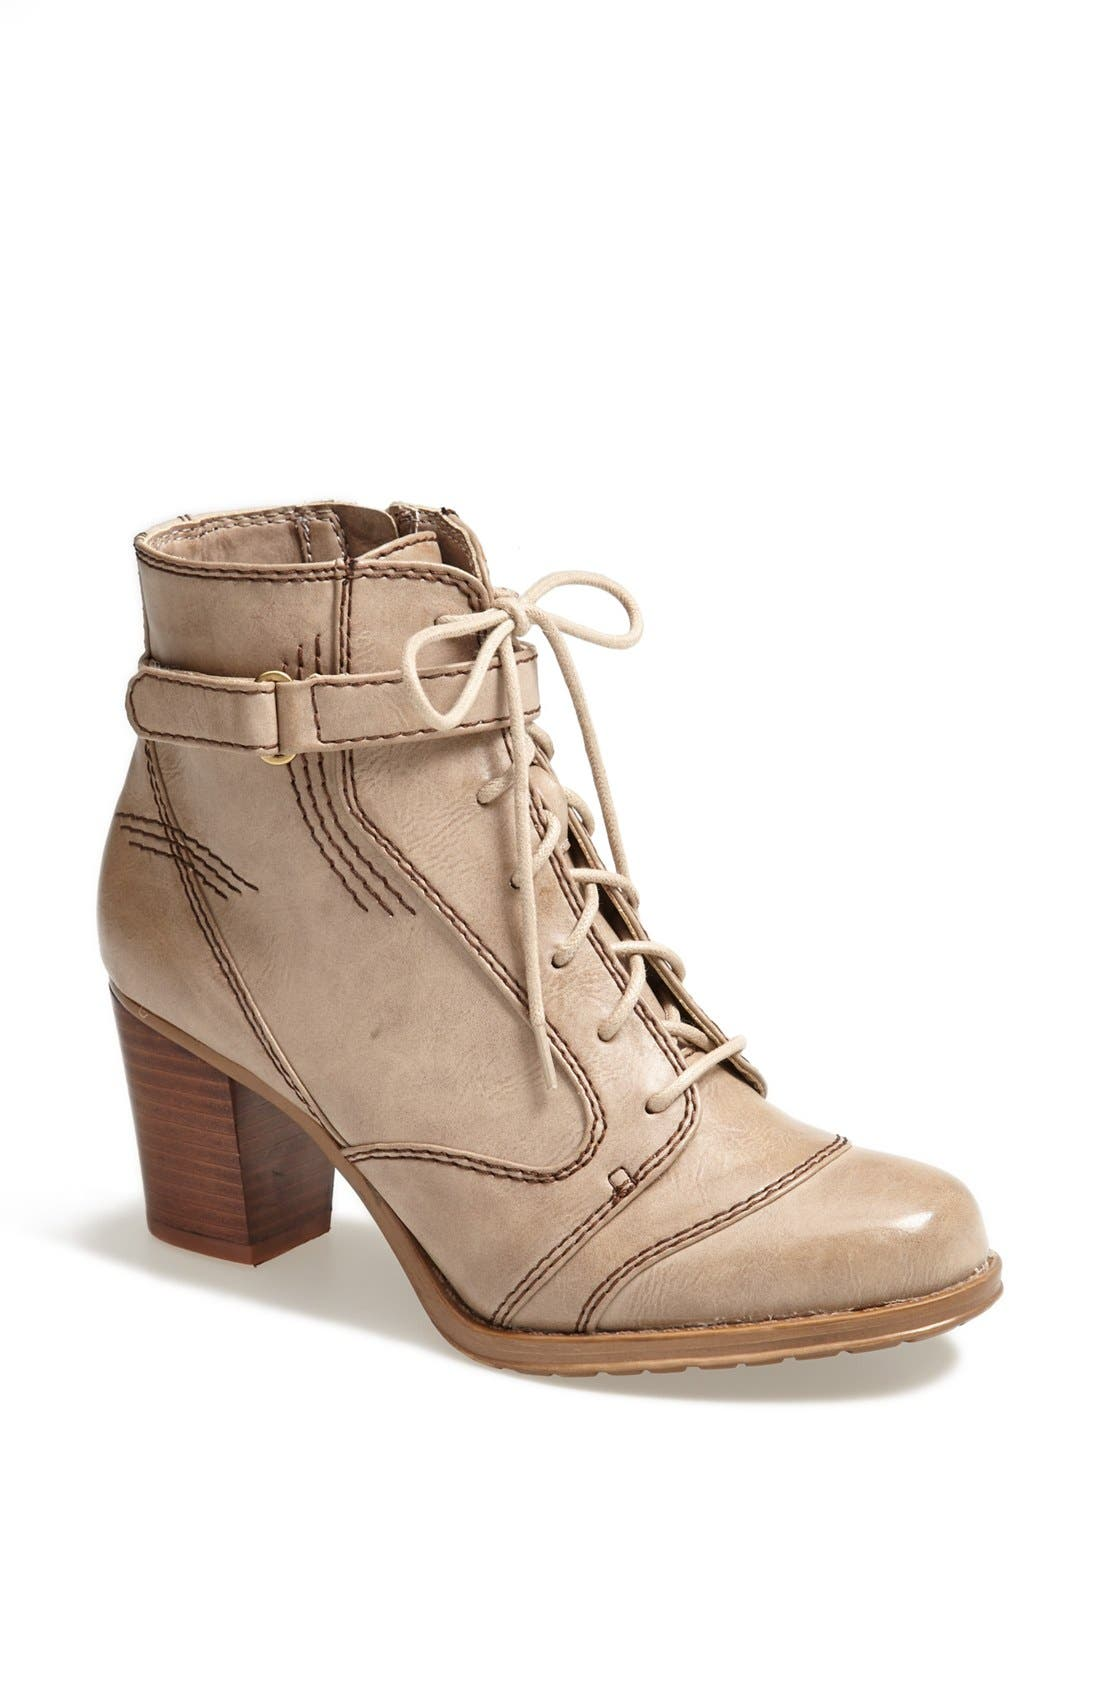 Alternate Image 1 Selected - Naturalizer 'Davina' Faux Leather Bootie